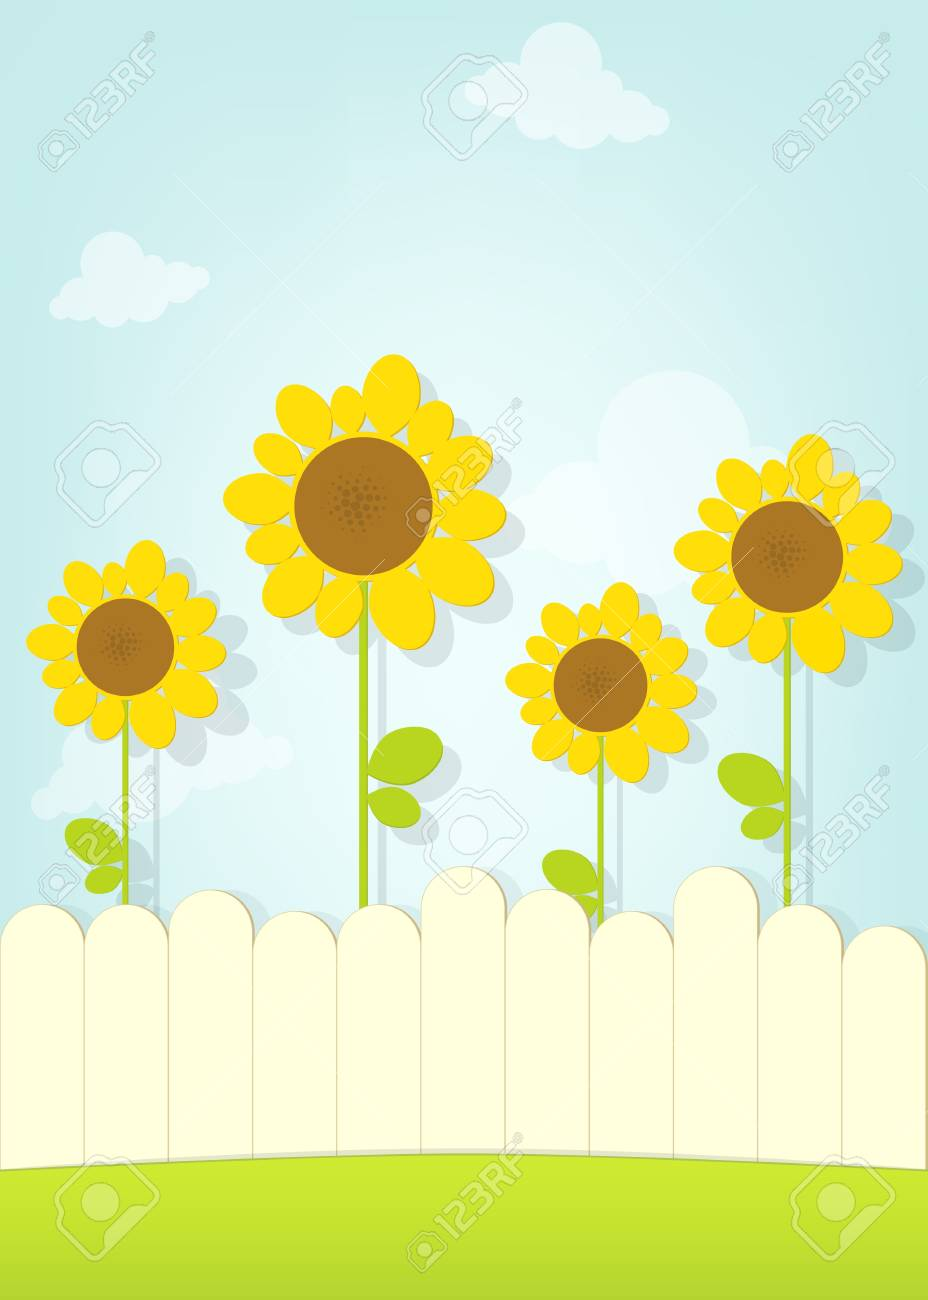 sunflowers behind fence Stock Vector - 21862994